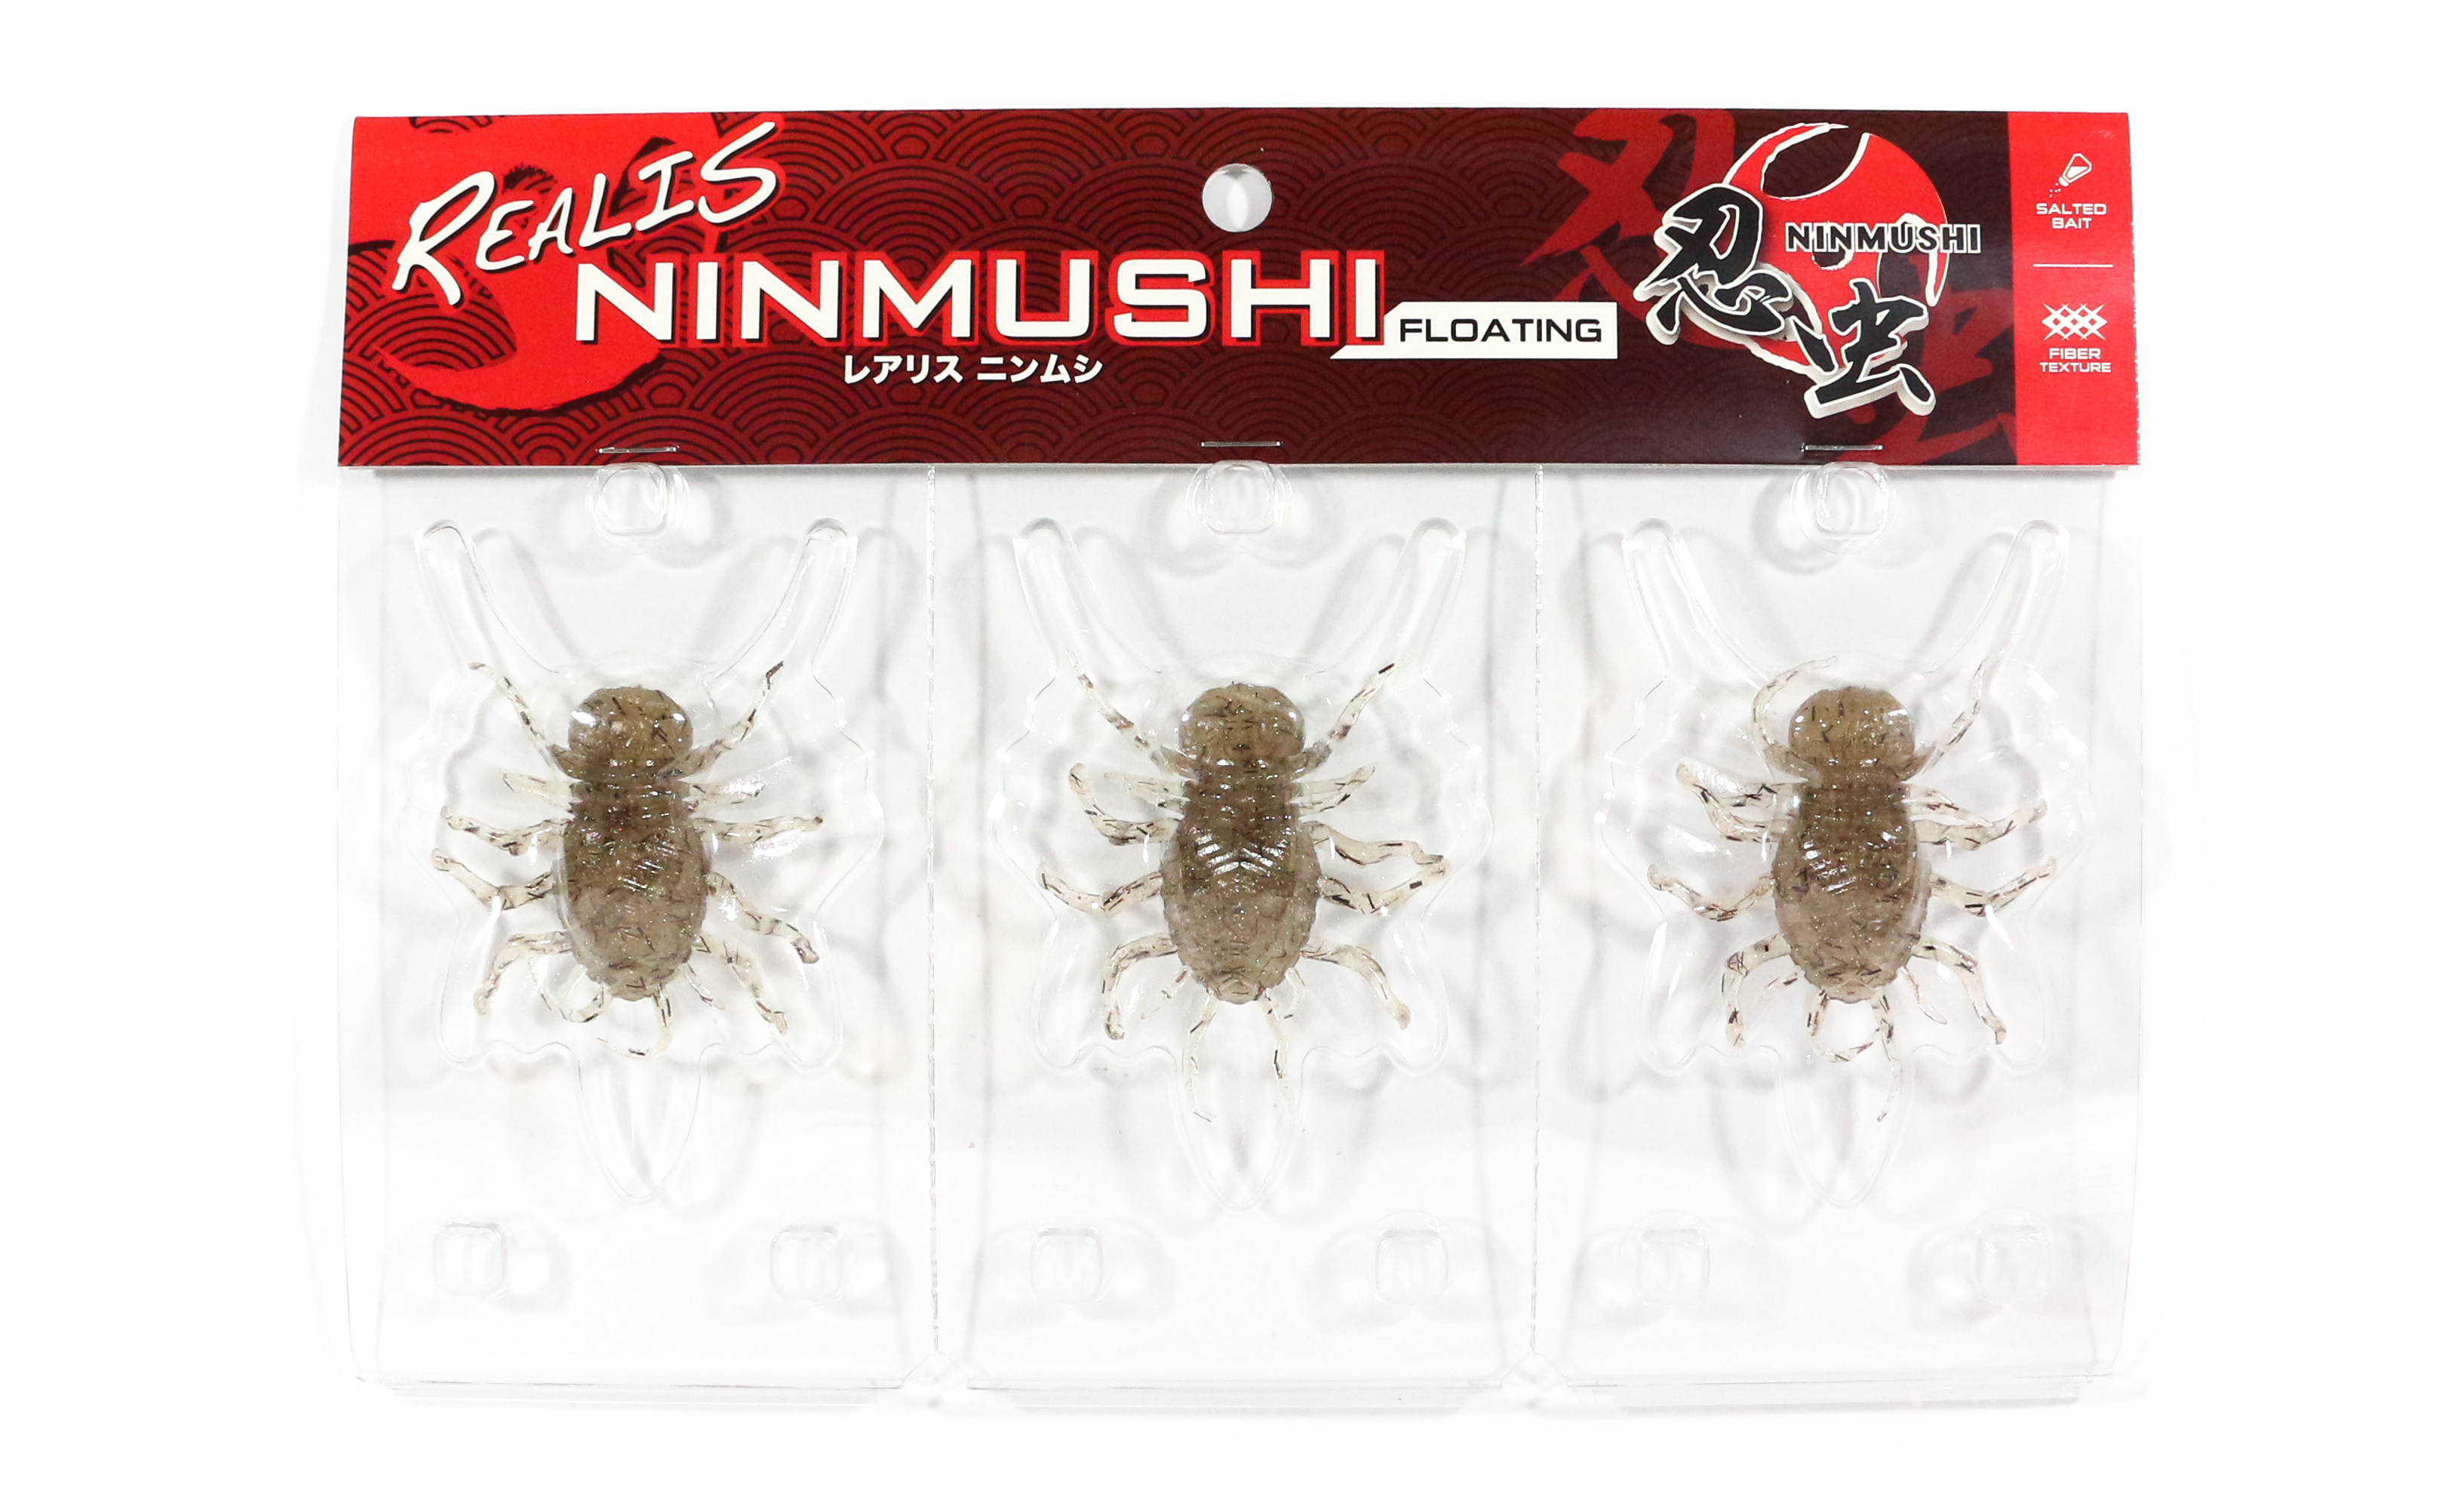 Duo Soft Lure Ninmushi Bug Floating Lure 3 piece pack F603 (1126)